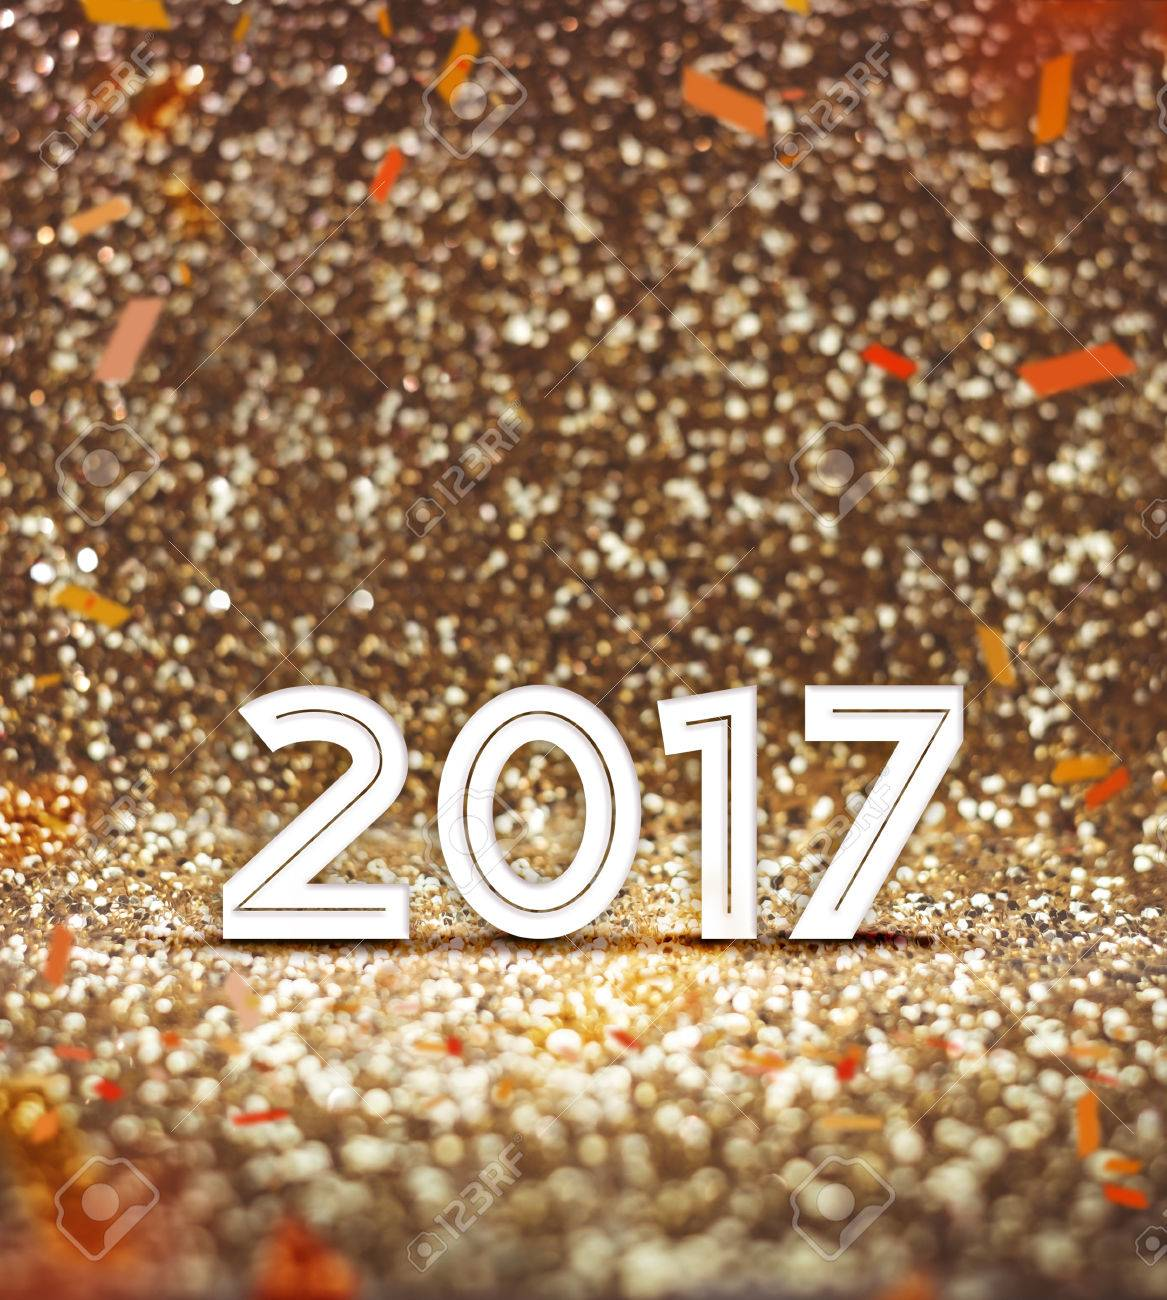 stock photo vintage filter happy new year 2017 year number with confetti at sparkling golden glitter background holiday greeting cardleave space for